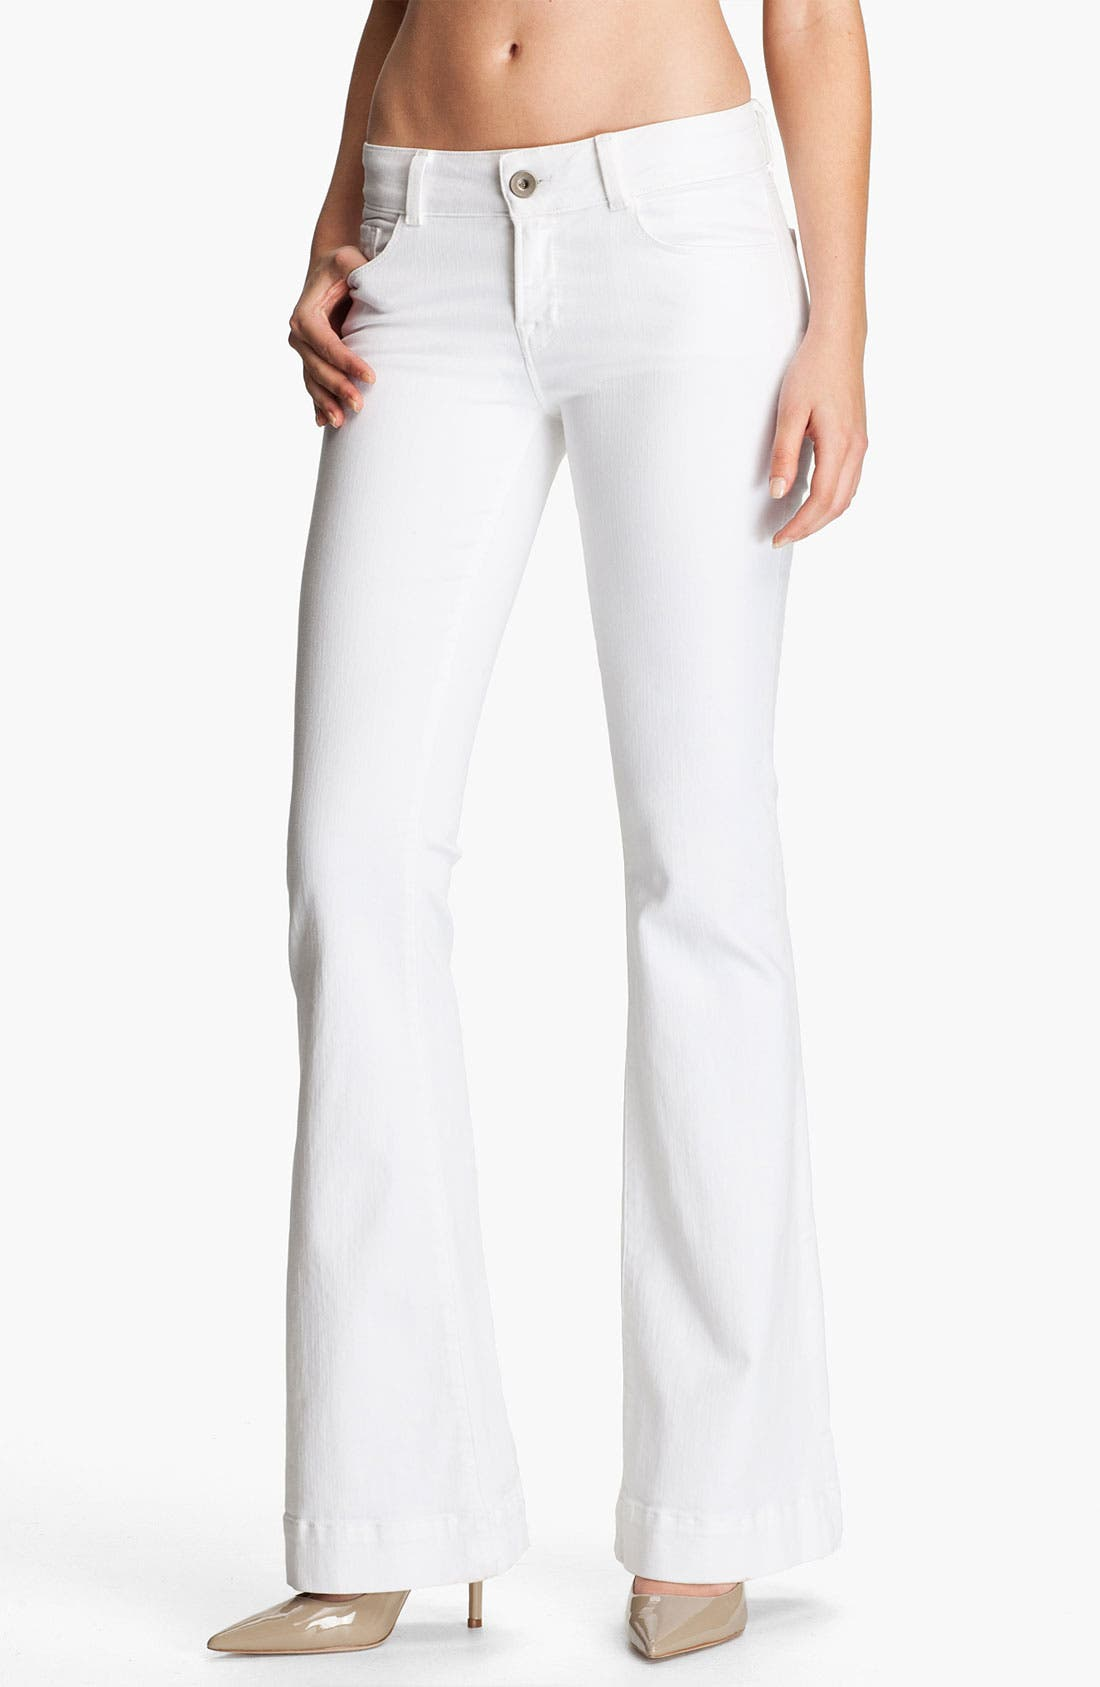 Alternate Image 1 Selected - J Brand Low Rise Bell Bottom Stretch Jeans (Blanc)